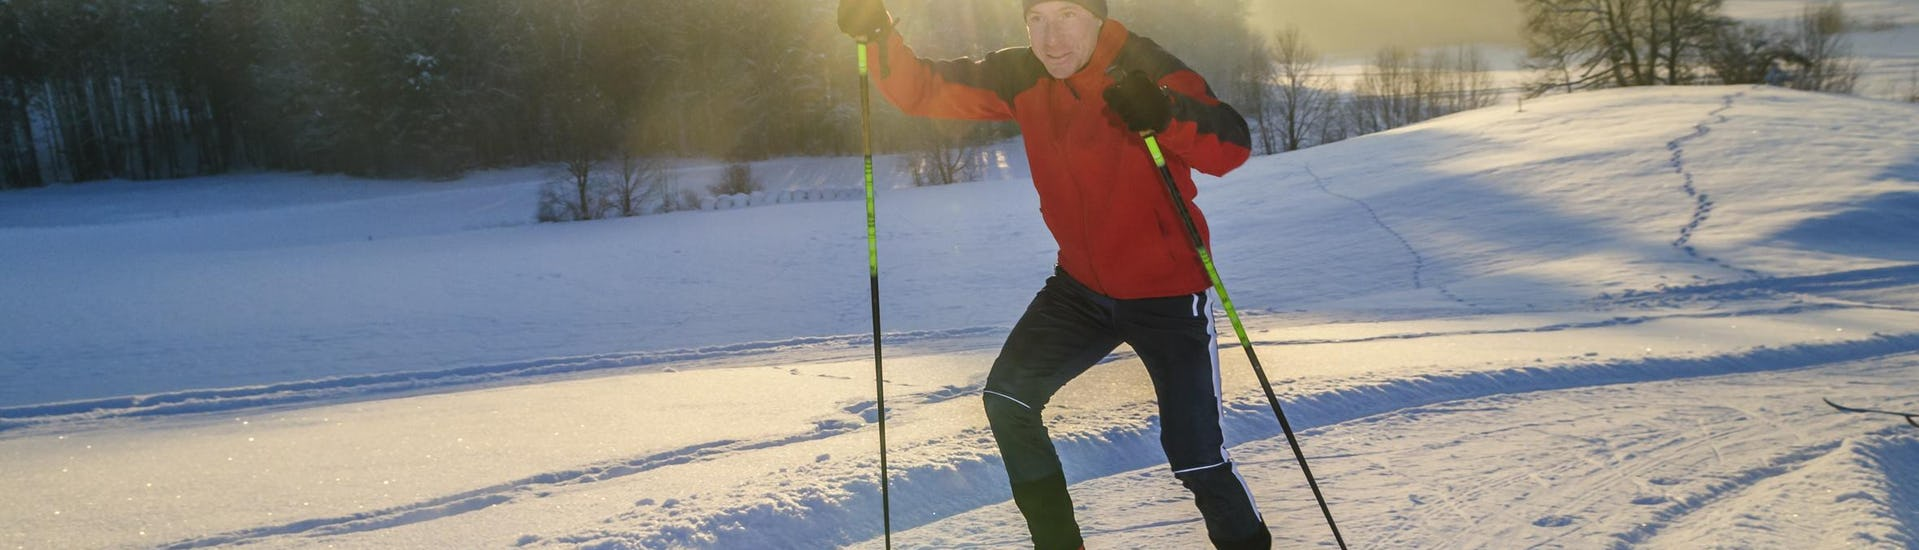 Cross Country Ski Instructor Private - All Levels